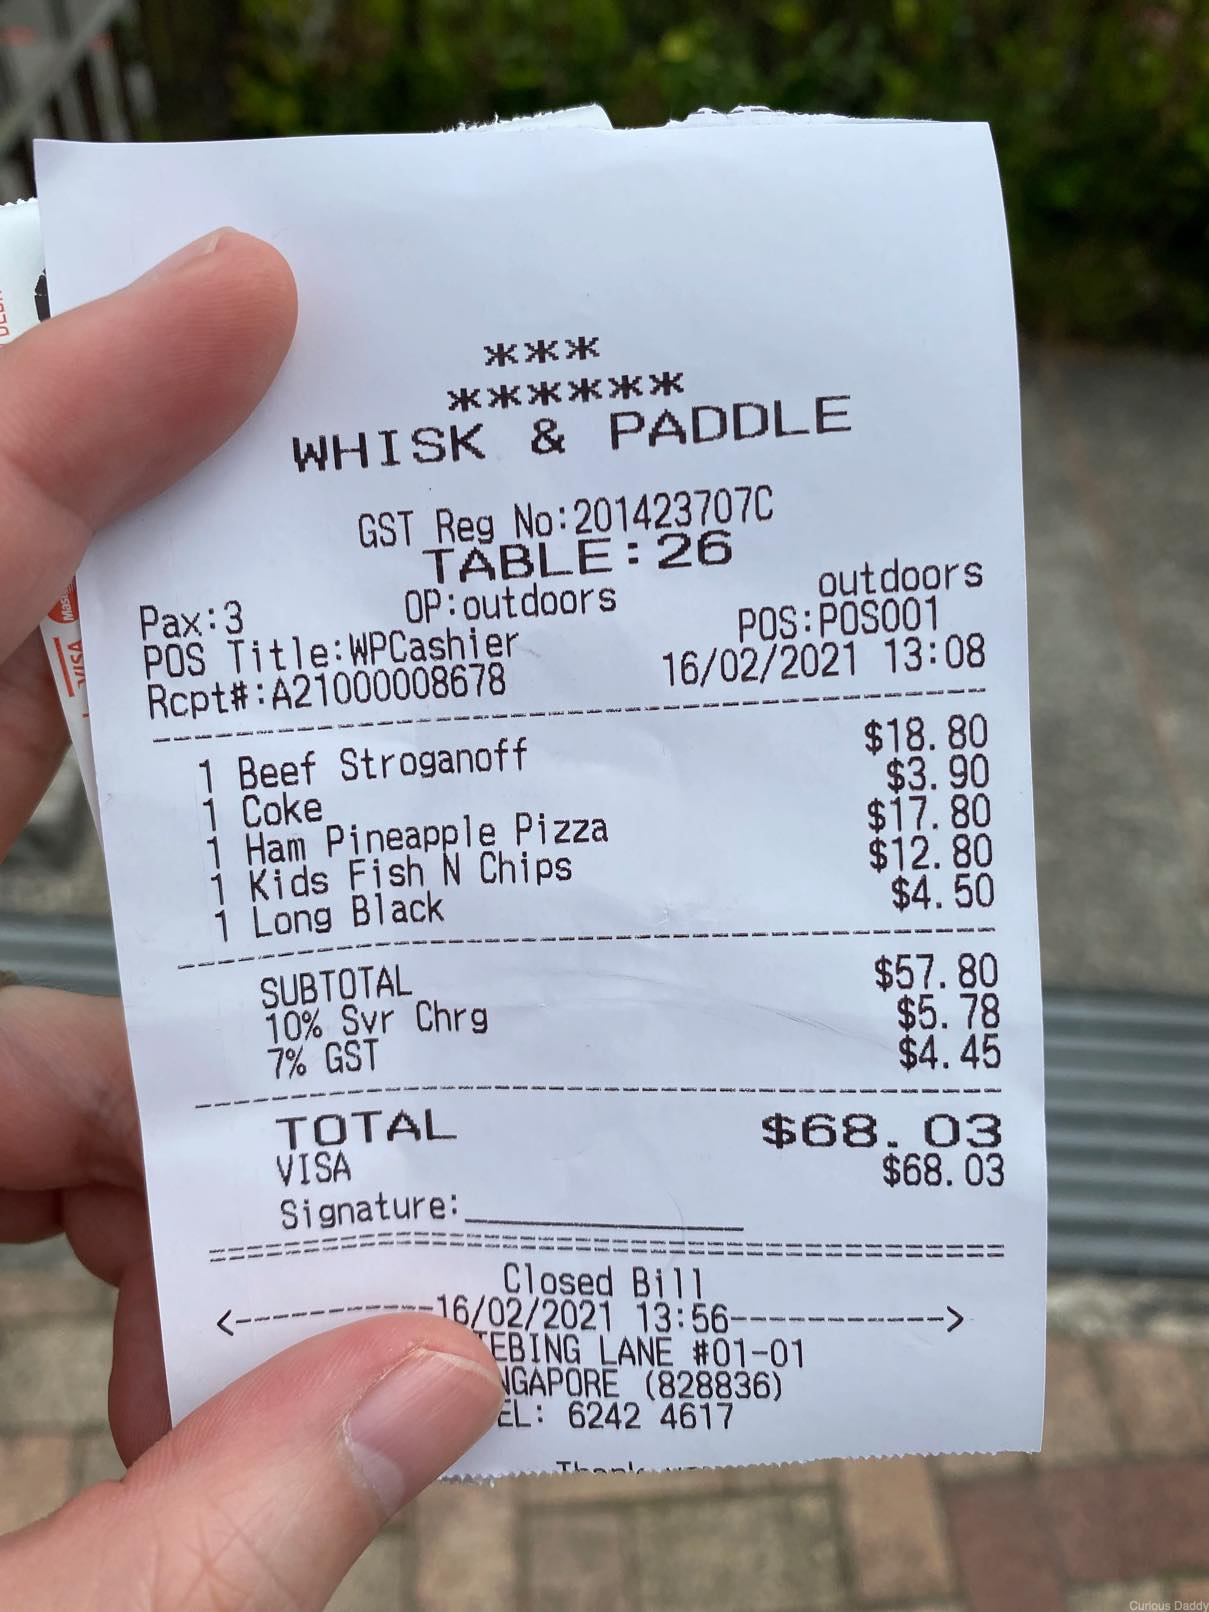 Whisk & Paddle receipt